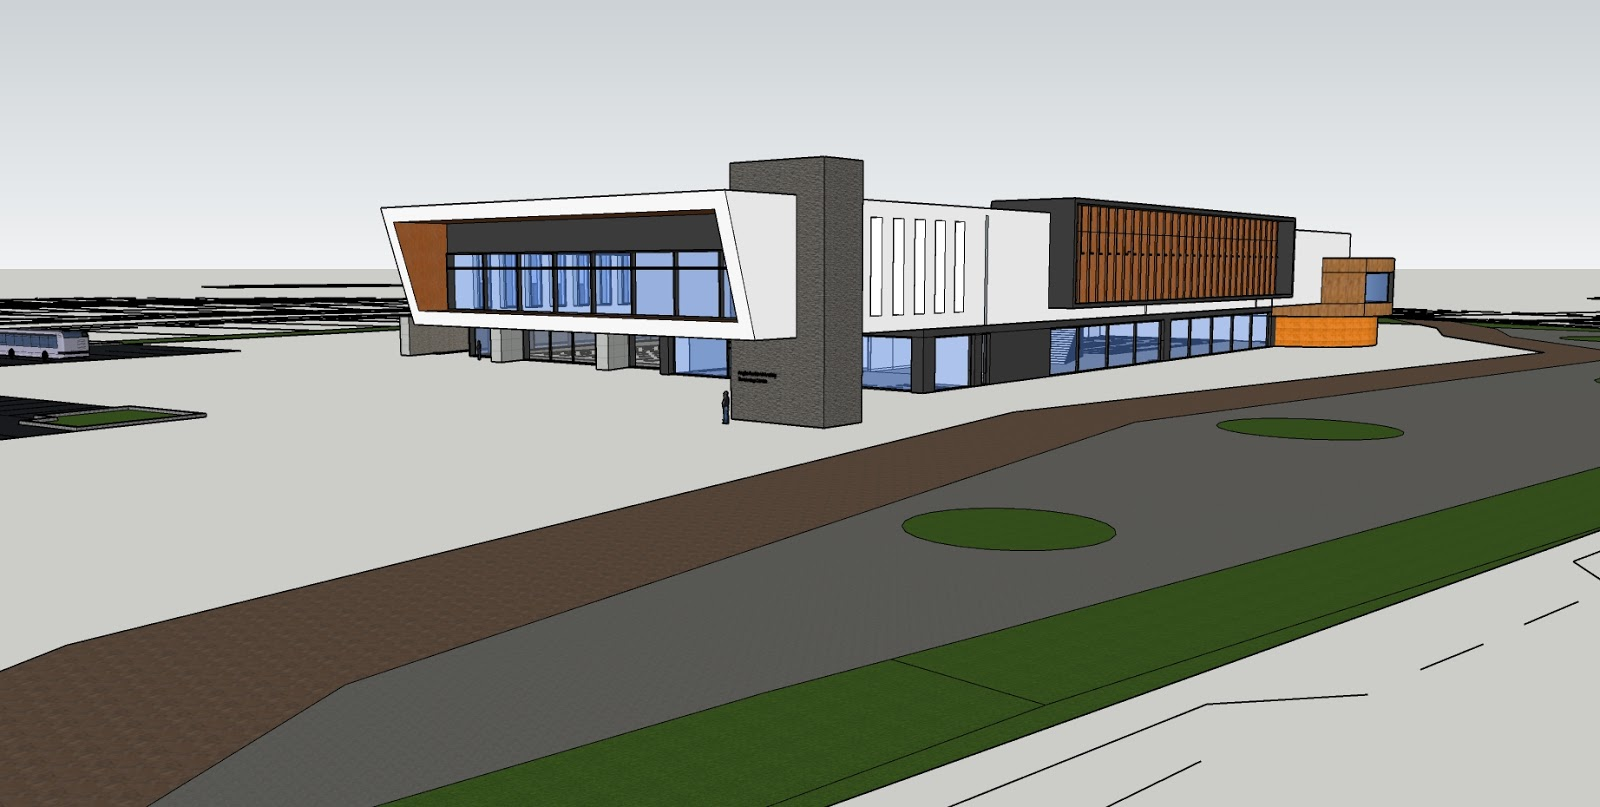 Swimming Pool Centre, Initial concept in SketchUp